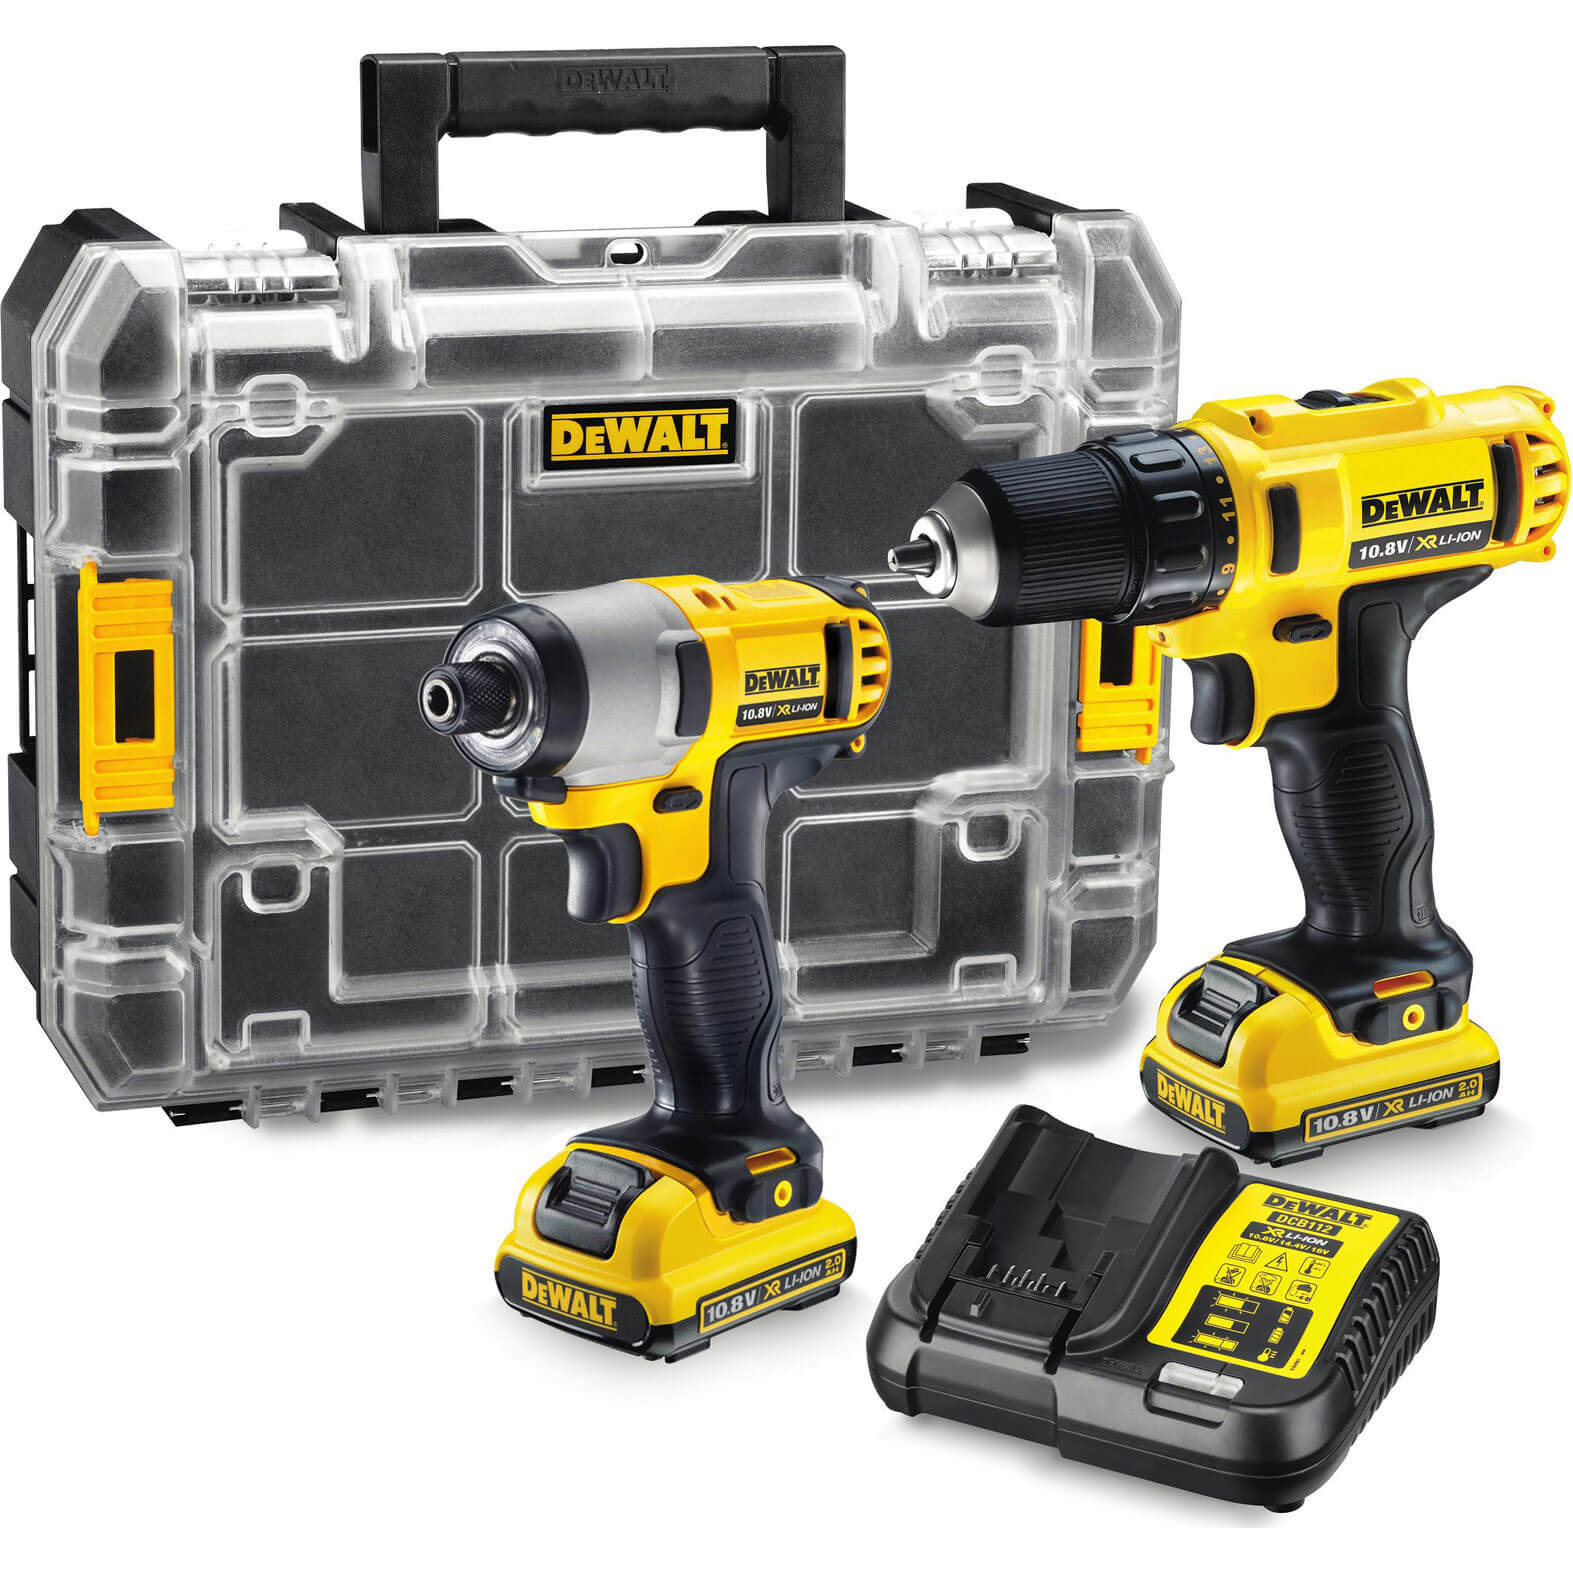 Image of DeWalt DCZ211D2T 10.8v Cordless XR Cordless Drill Driver & Impact Driver with 2 Lithium Ion Batteries 2ah